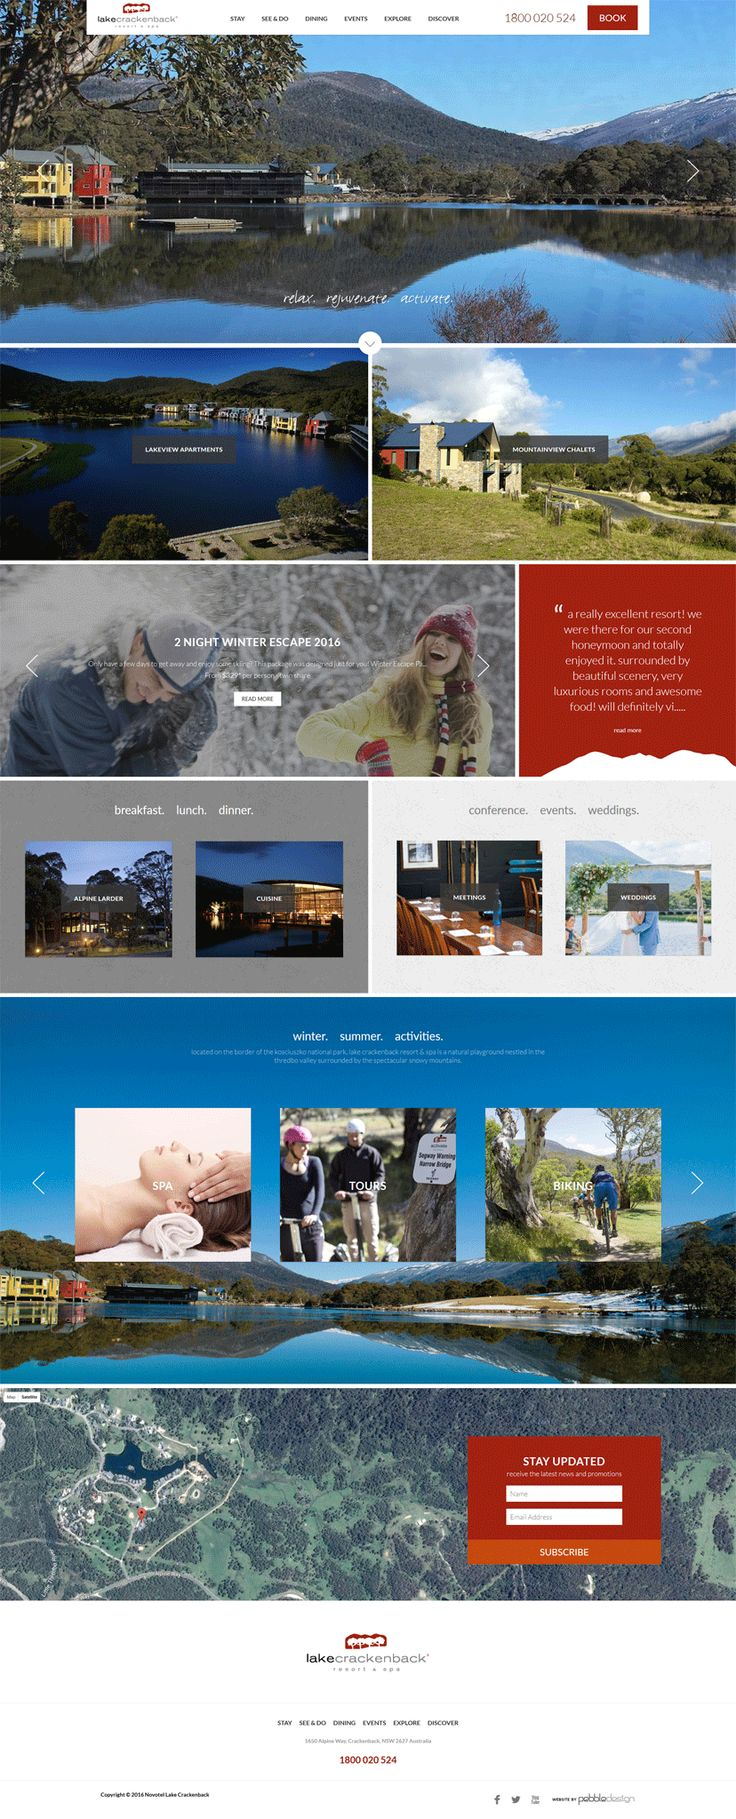 Located on the border of the Kosciuszko National Park, Lake Crackenback Resort & Spa is a natural playground nestled in the Thredbo Valley surrounded by the spectacular Snowy Mountains. To match the great snowfall Australia has had this season, we have revamped the their website with a cool new home page! http://www.lakecrackenback.com.au/  #‎pebbledesign‬ ‪#‎hotelwebdesign‬ ‪#‎hotelwebsites‬ ‪#‎webdesign‬ ‪#‎websitedesign‬